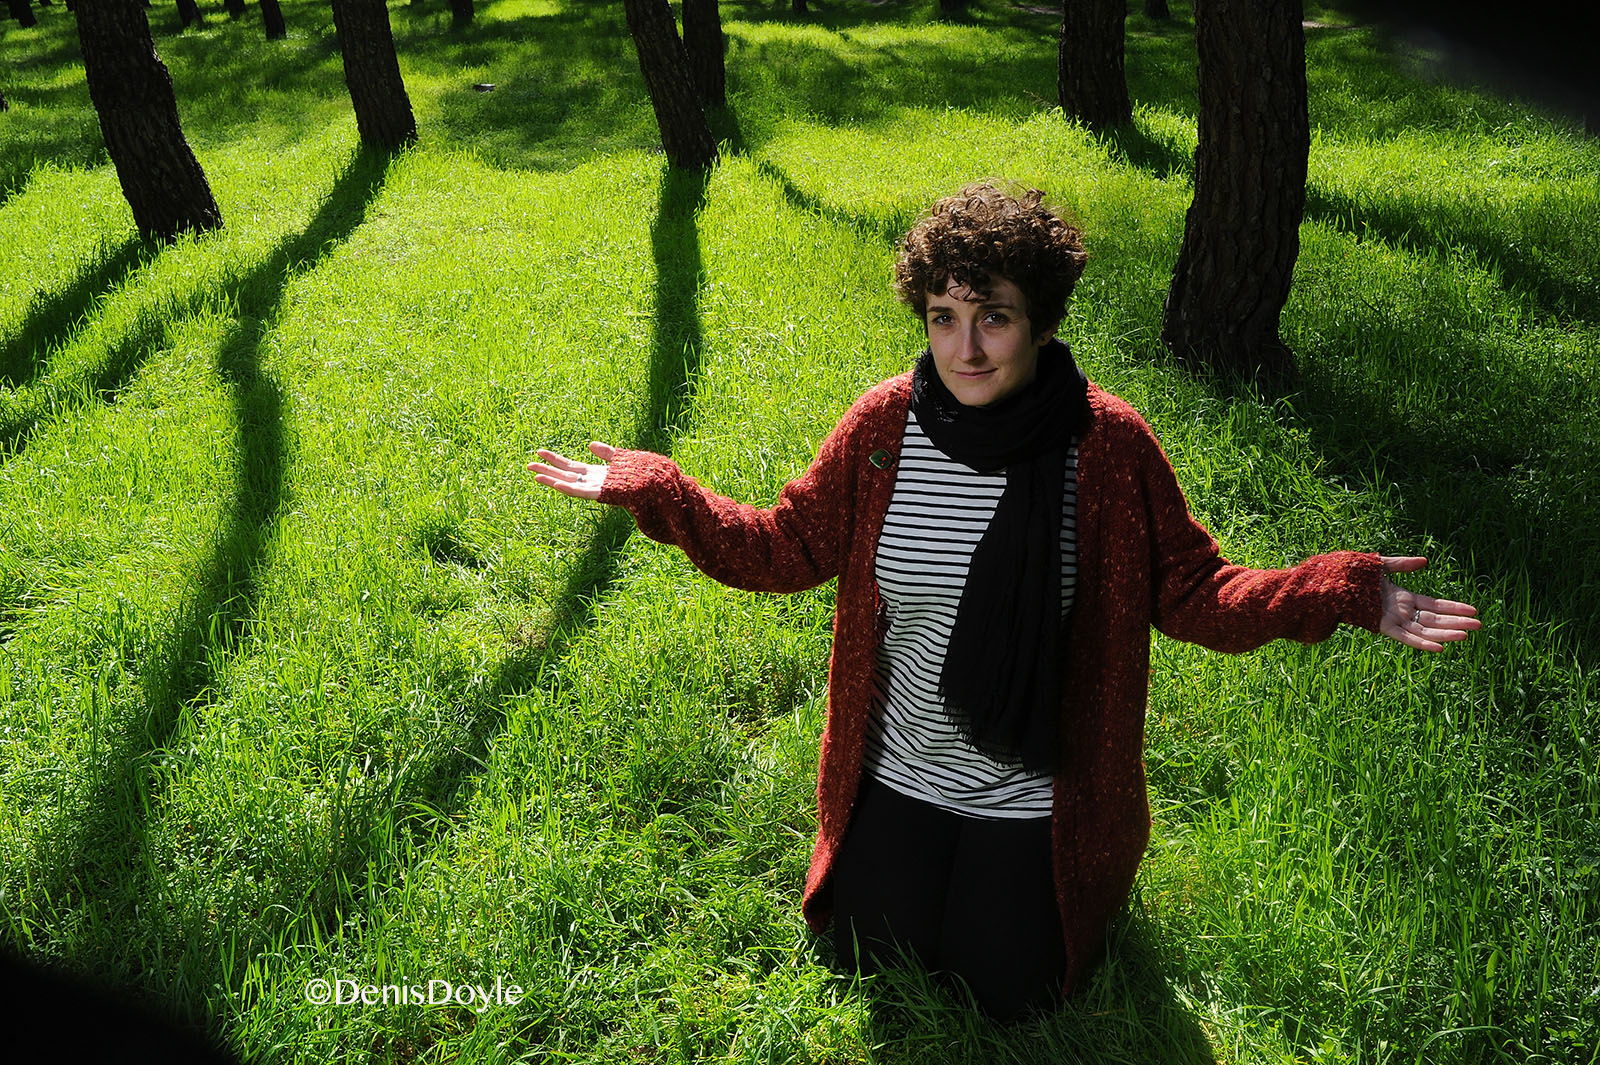 Poet Silvia Nieva in the Woods